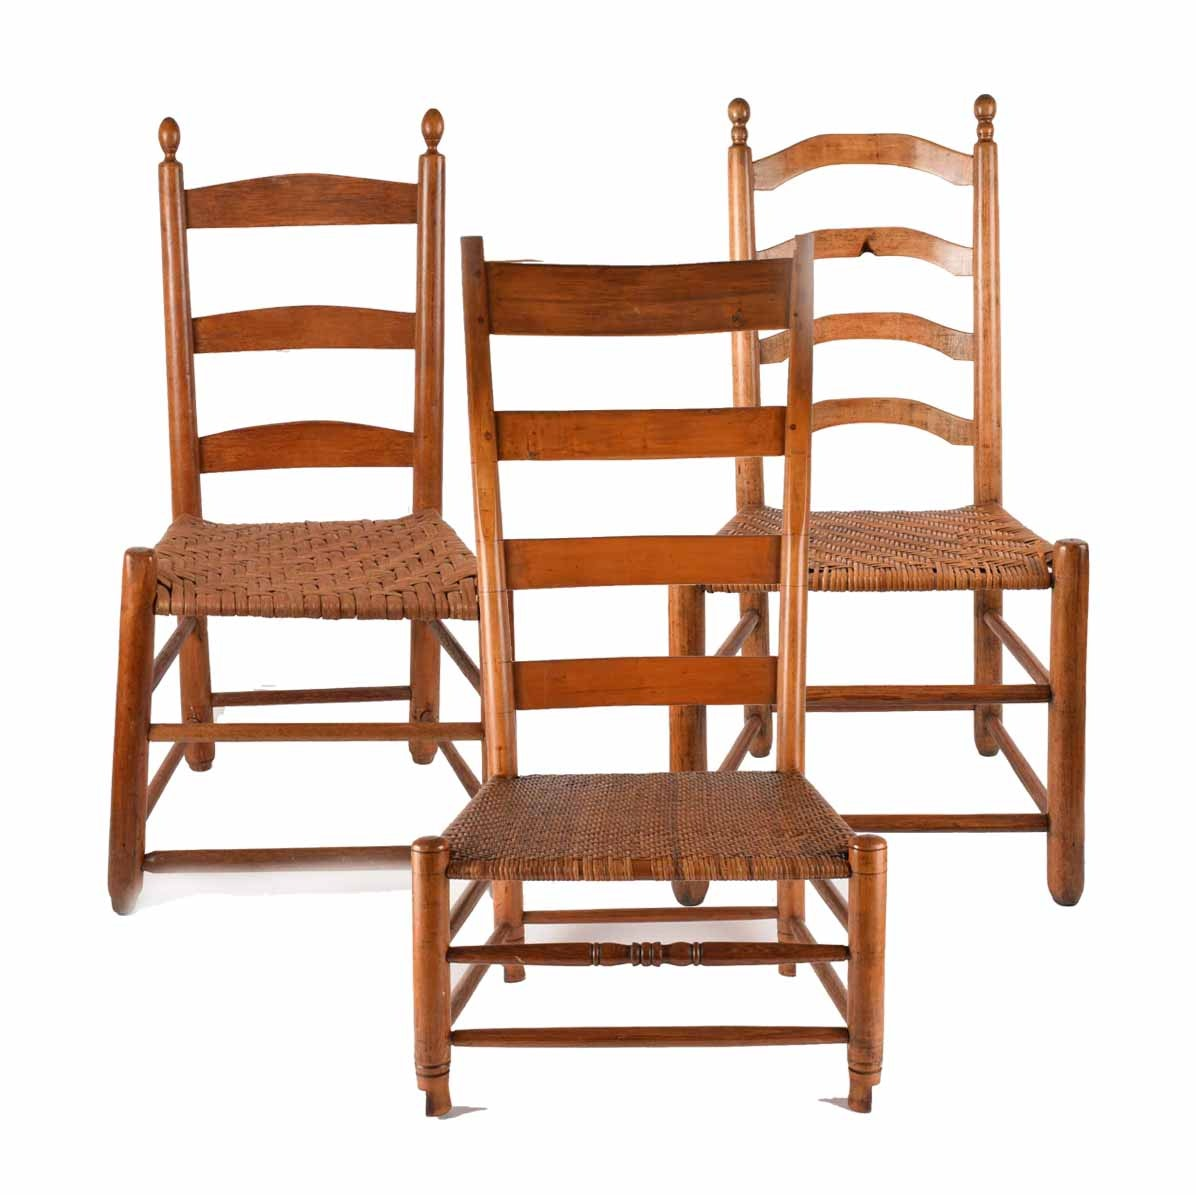 Three Antique Ladder Back Chairs With Woven Seats